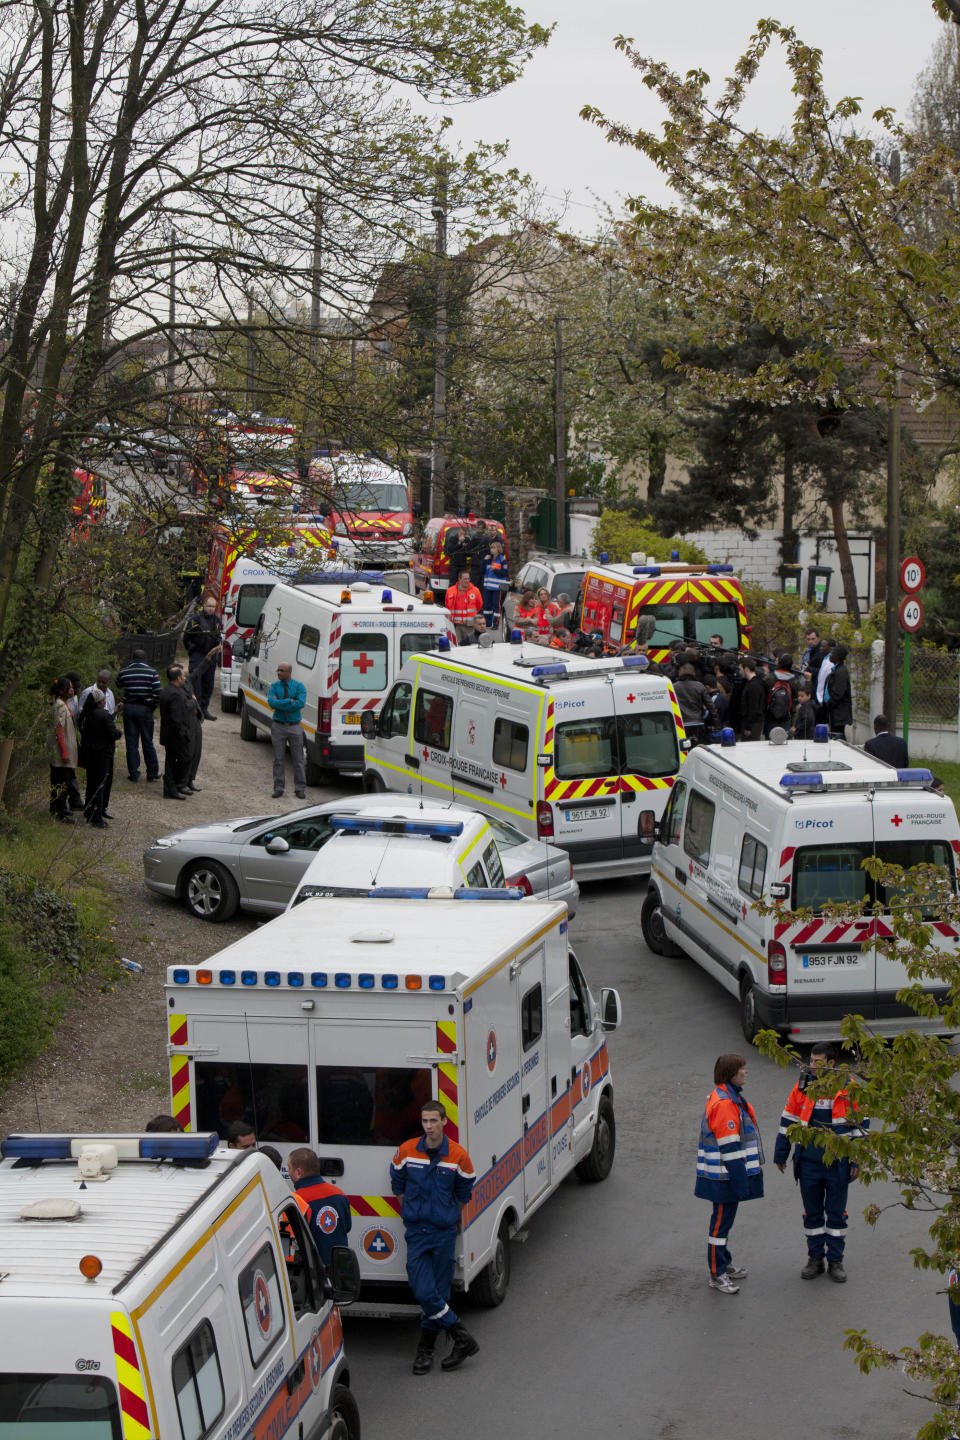 Emergency workers are seen around the area of a building accident, in Pierrefitte, north of Paris, Sunday April 8, 2012. French officials say a floor has collapsed at a building where an Easter religious ceremony was being held, killing a 6-year-old and seriously injuring four other people. (AP Photo/Thibault Camus)